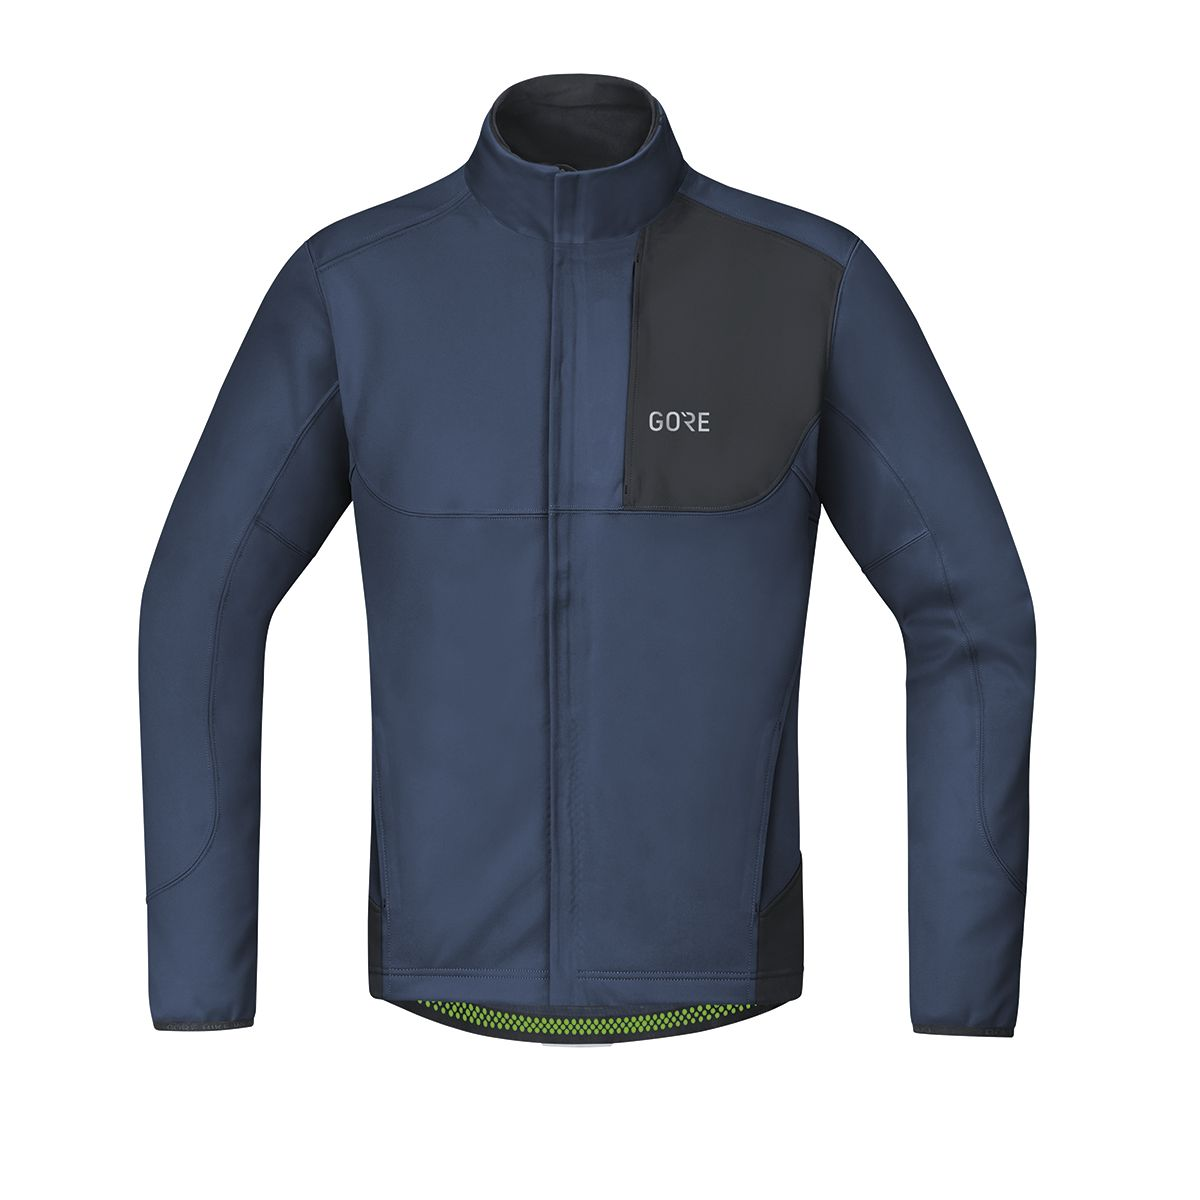 C5 GORE WINDSTOPPER THERMO TRAIL JACKET men's winter jacket